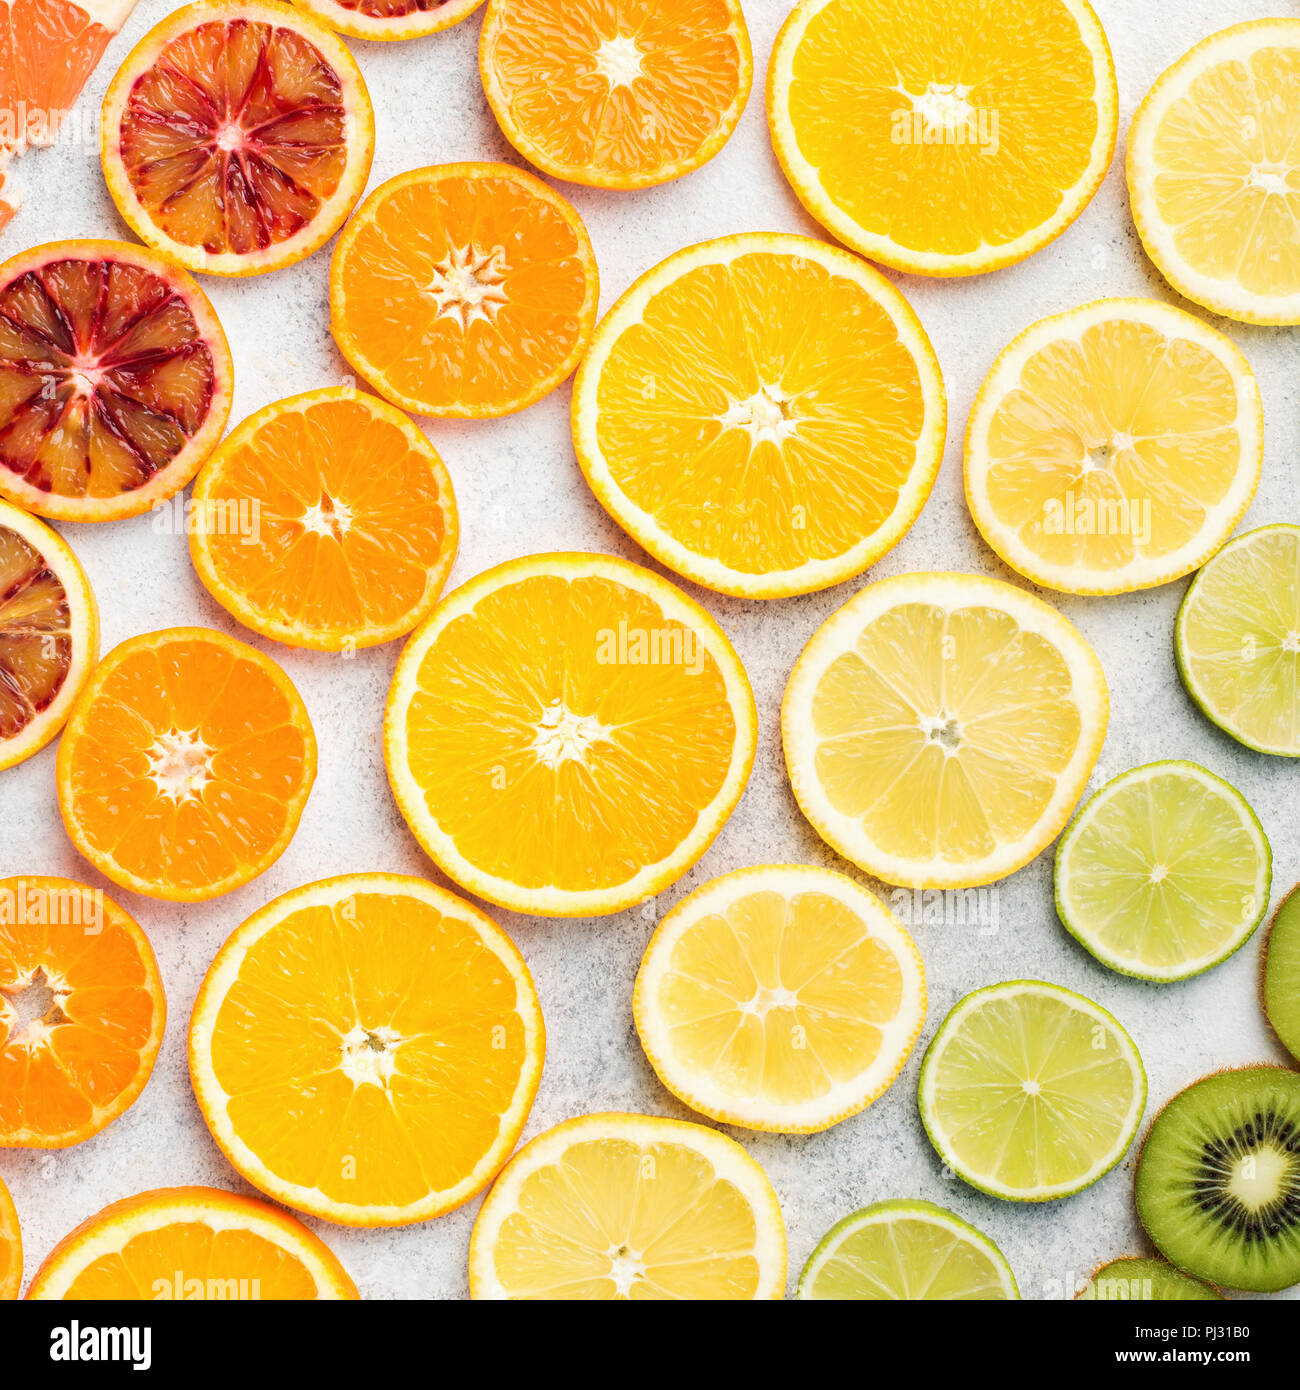 Different varieties of citrus fruits, oranges, lemons, limes, kiwis arranged in the rows, diagonal, square. Colorful background, top view - Stock Image